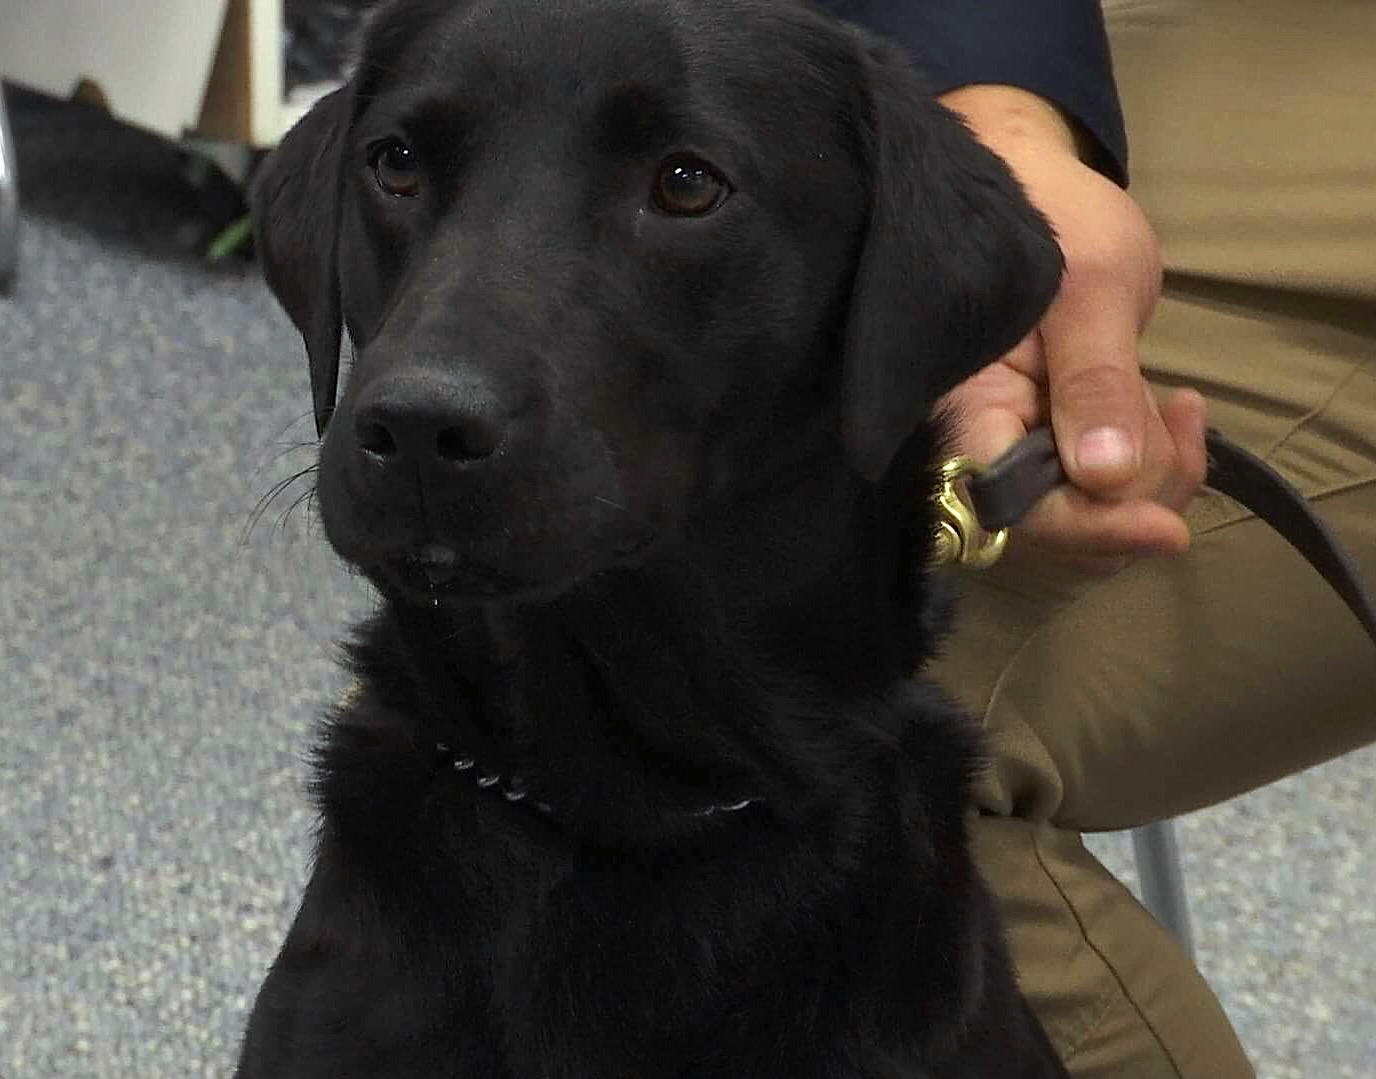 Police K-9 Officer Emma, a 2-year-old Labrador Retriever, is the St. George Police Department's newest recruit, St. George, Utah, Dec. 3, 2017 | Photo by Sheldon Demke, St. George News